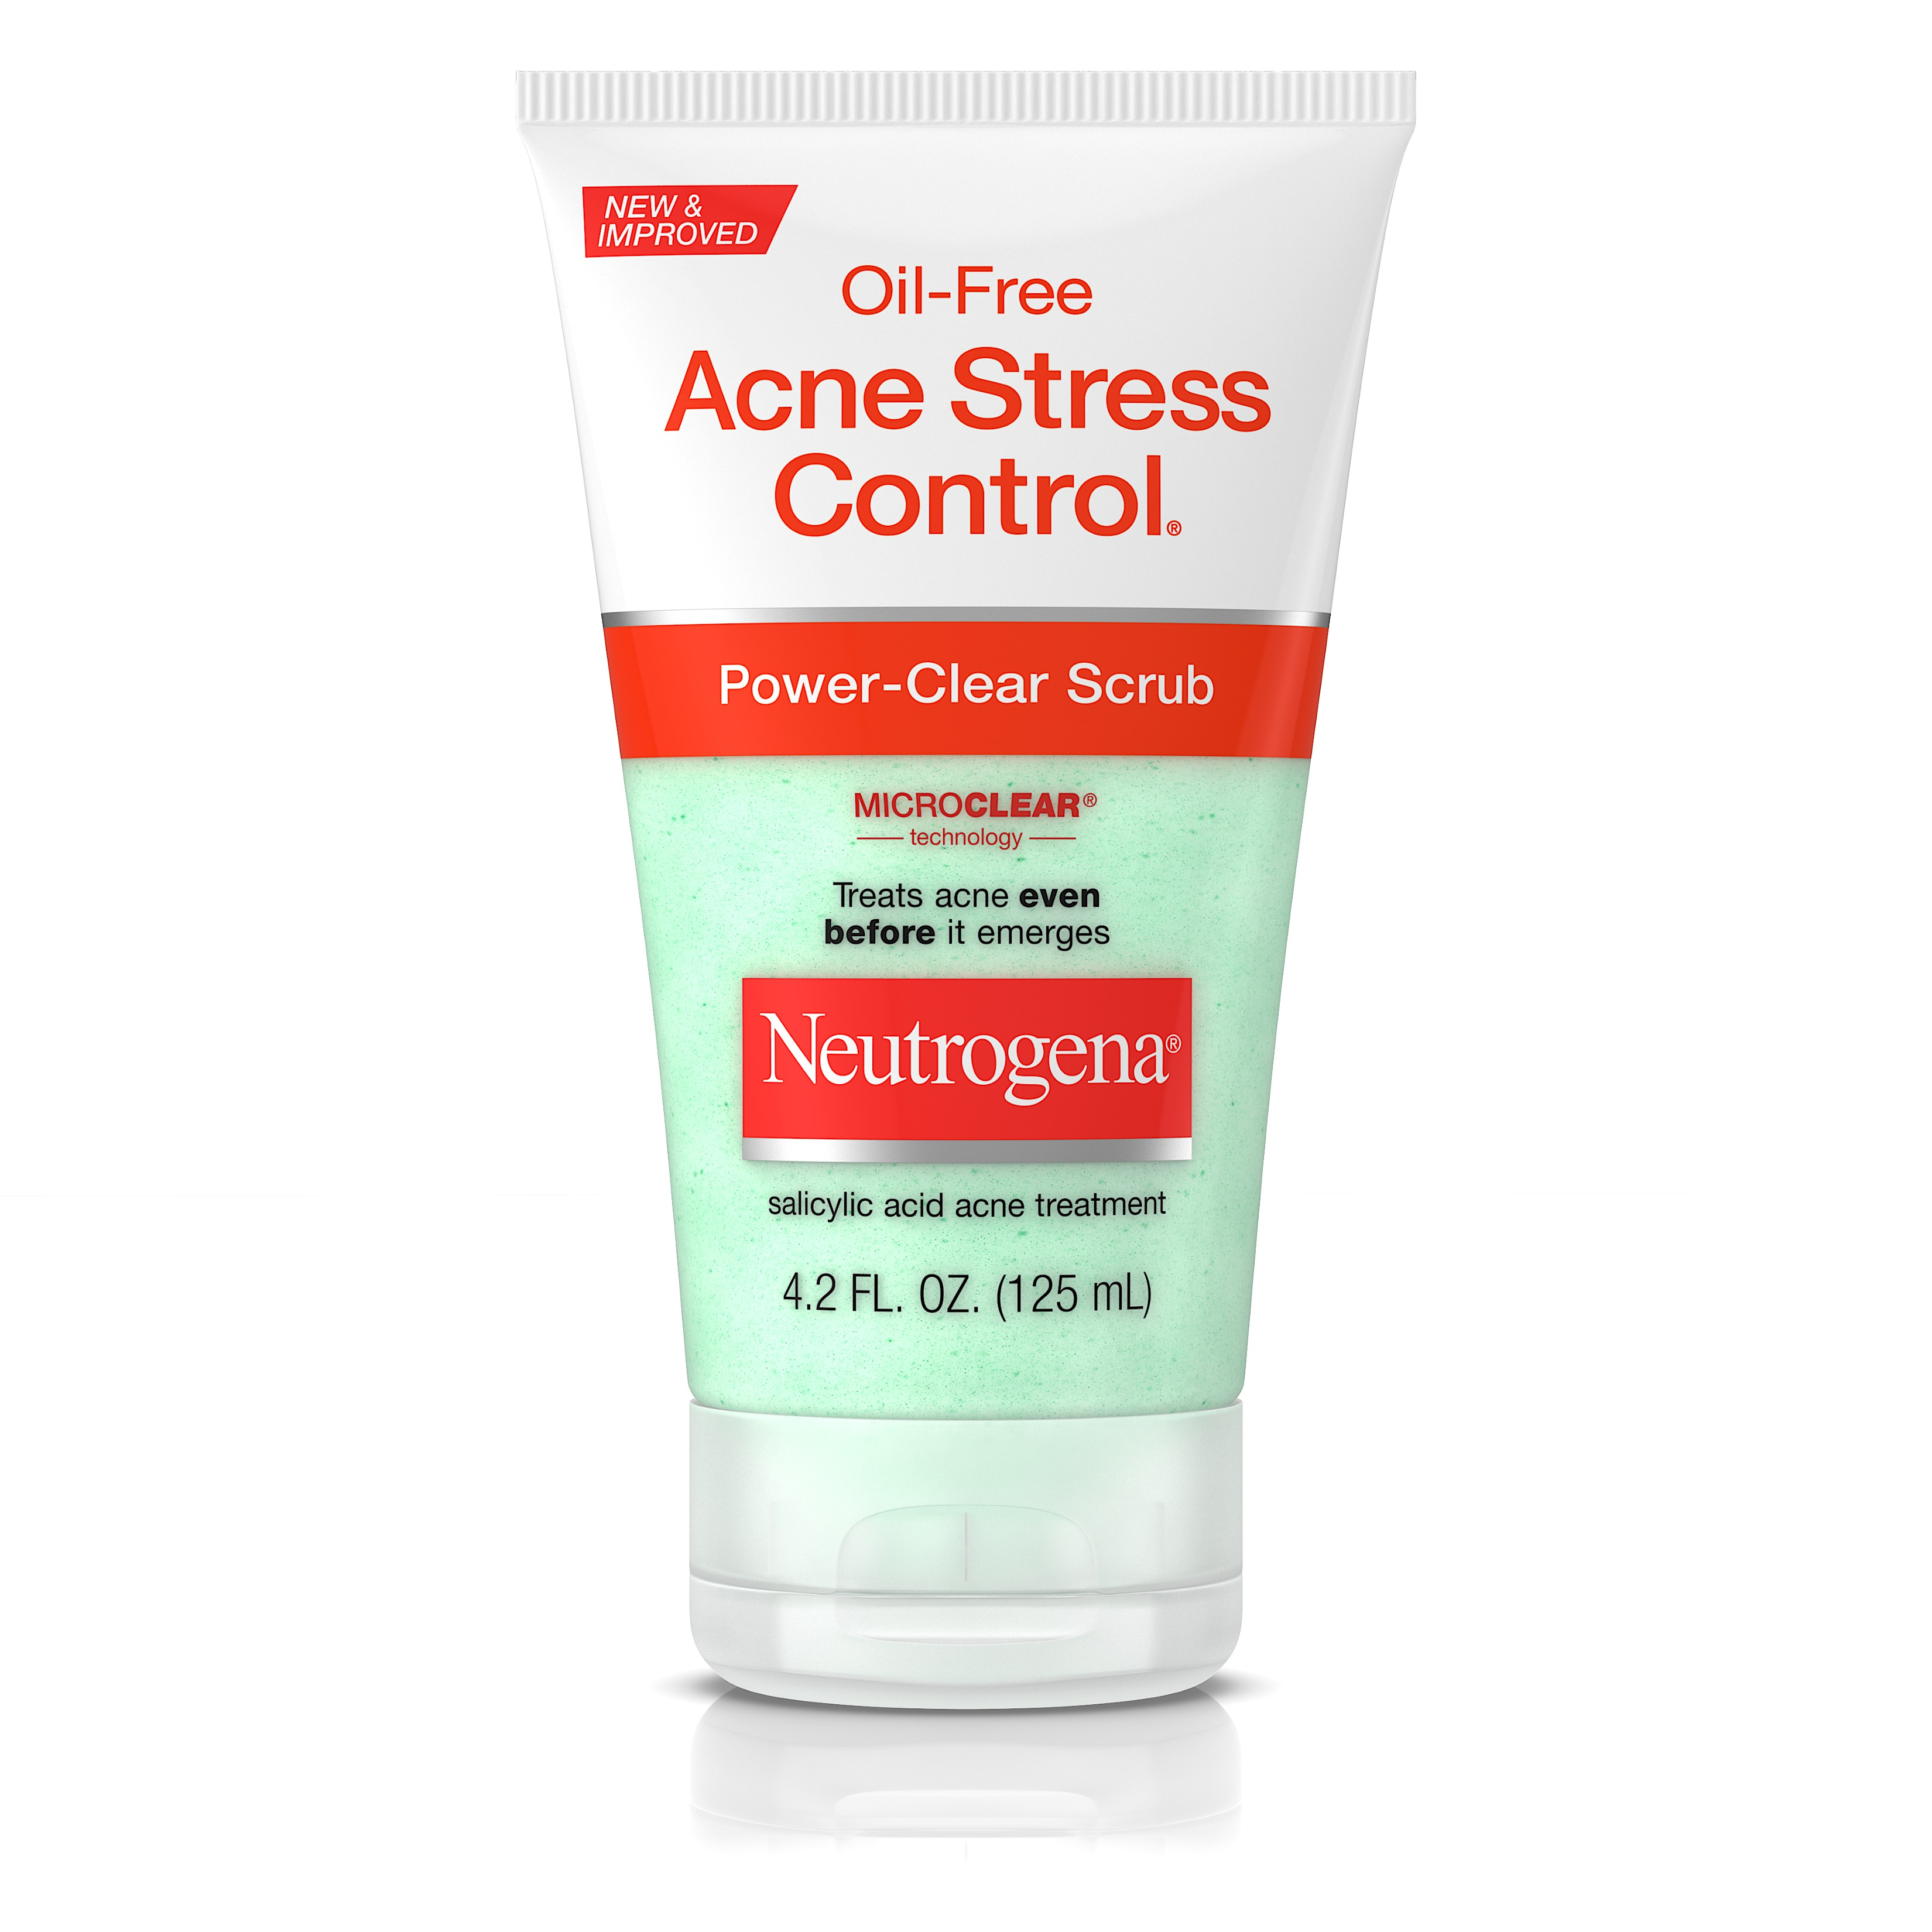 Neutrogena Oil-Free Acne Stress Control Power-Clear Scrub, 4.2 Fl. Oz. - Walmart.com